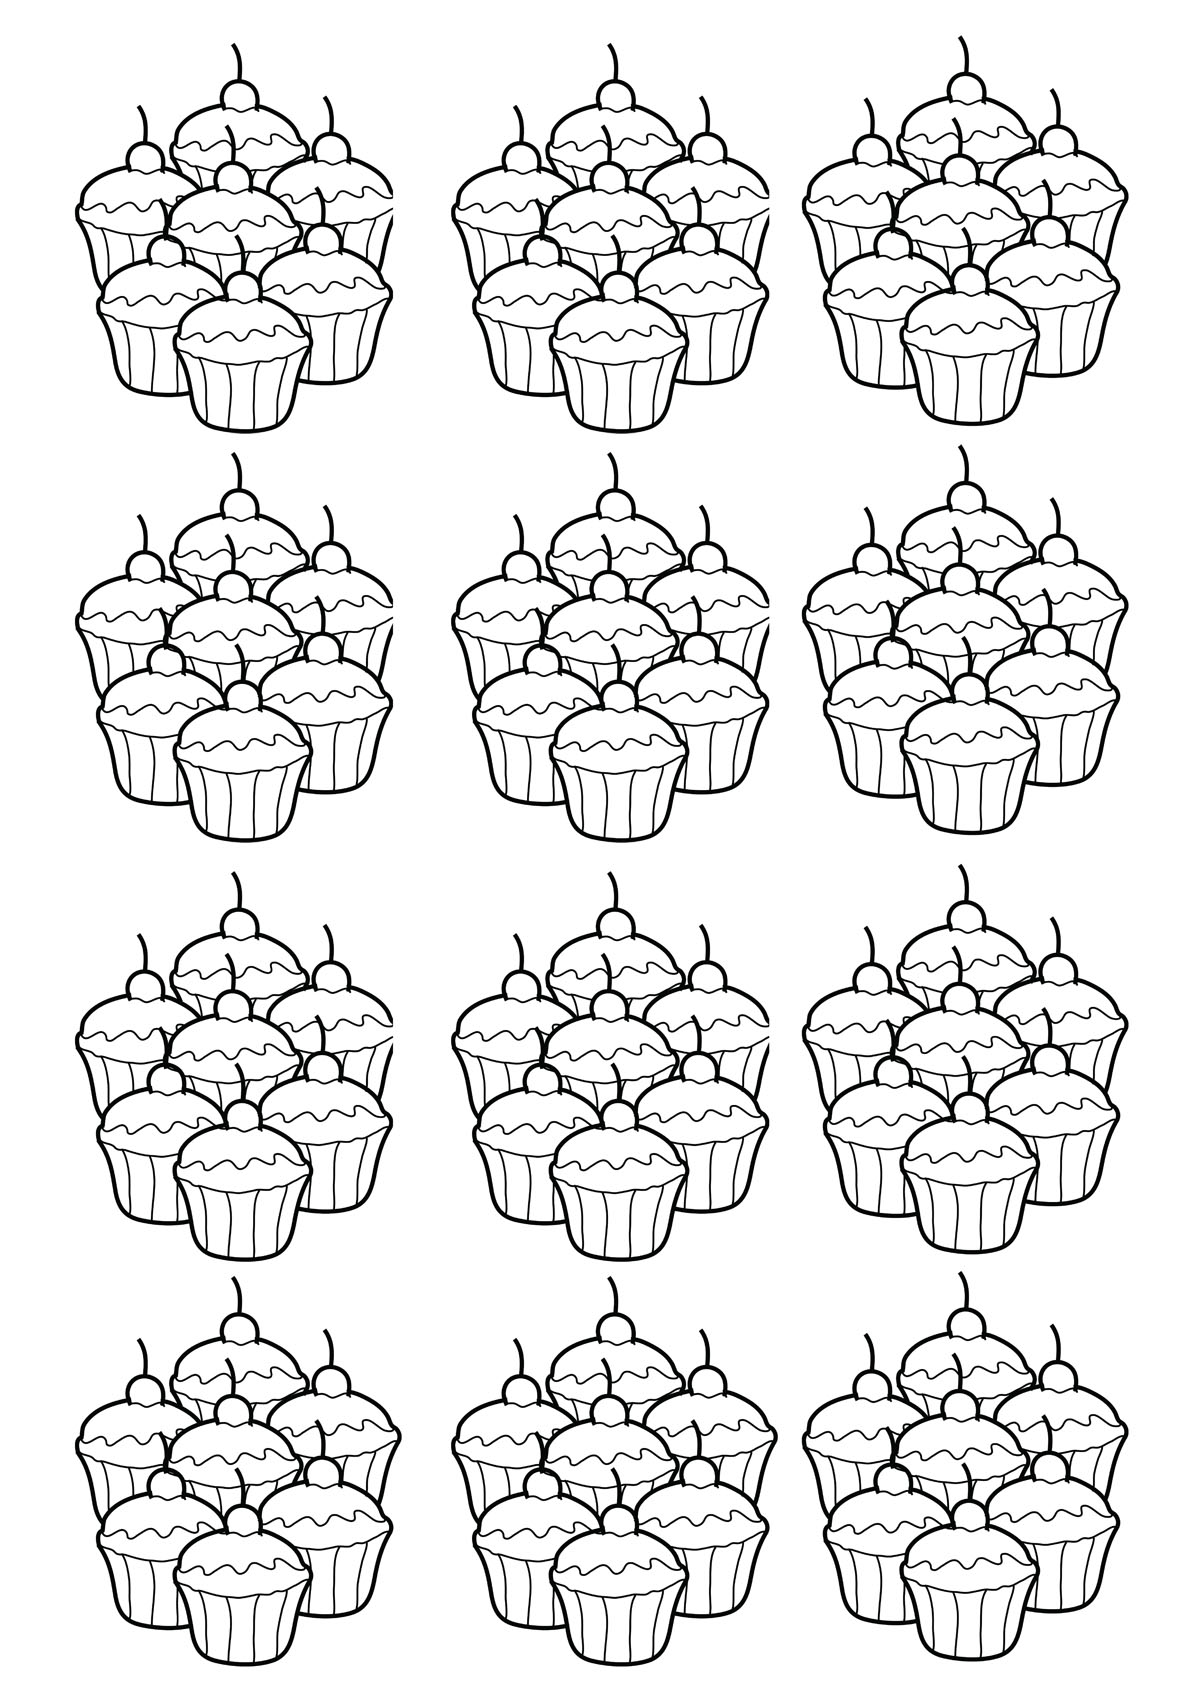 cupcakes mosaique cup cakes coloring pages for adults justcolor